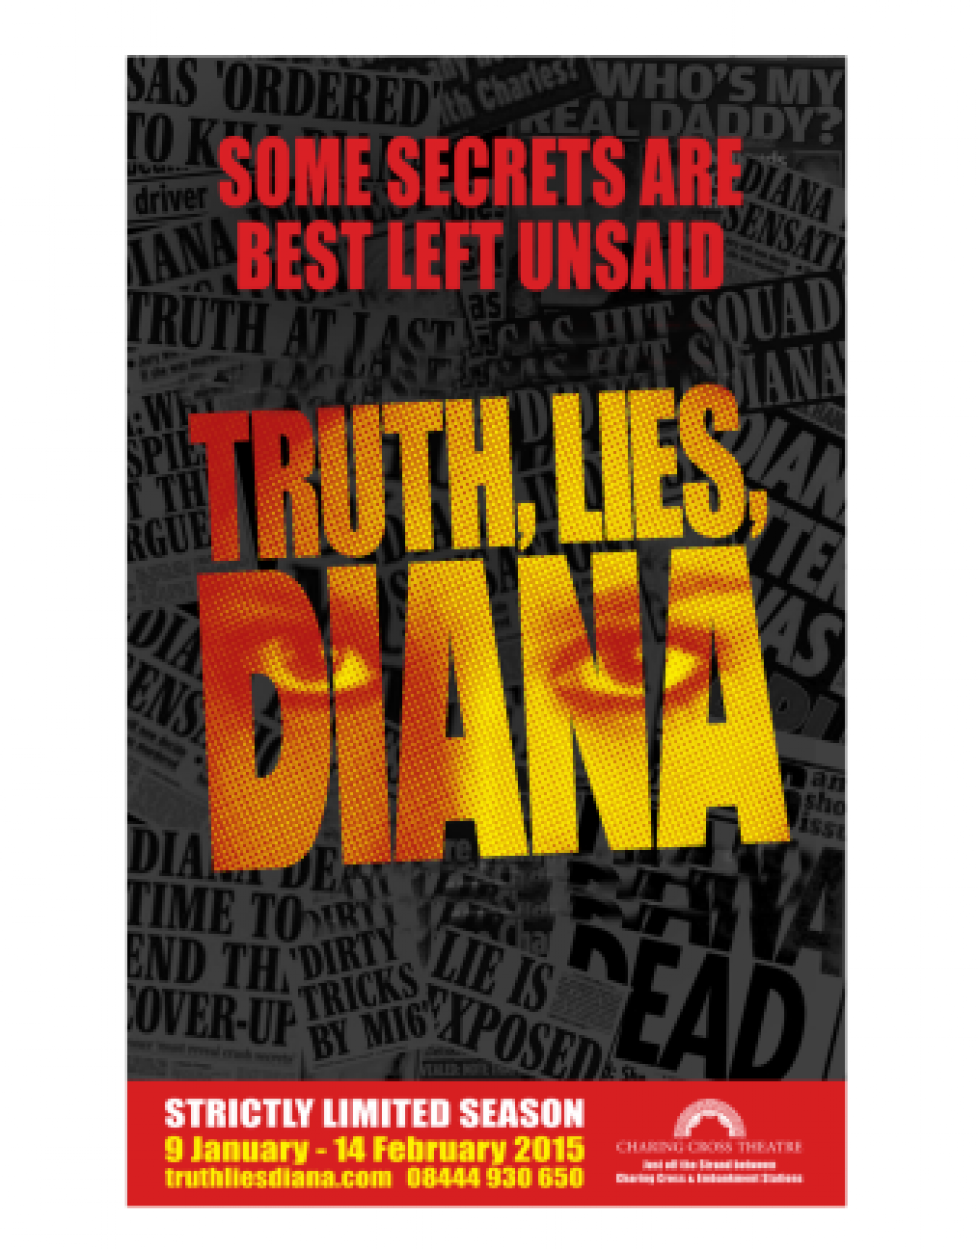 truth_lies_diana-poster